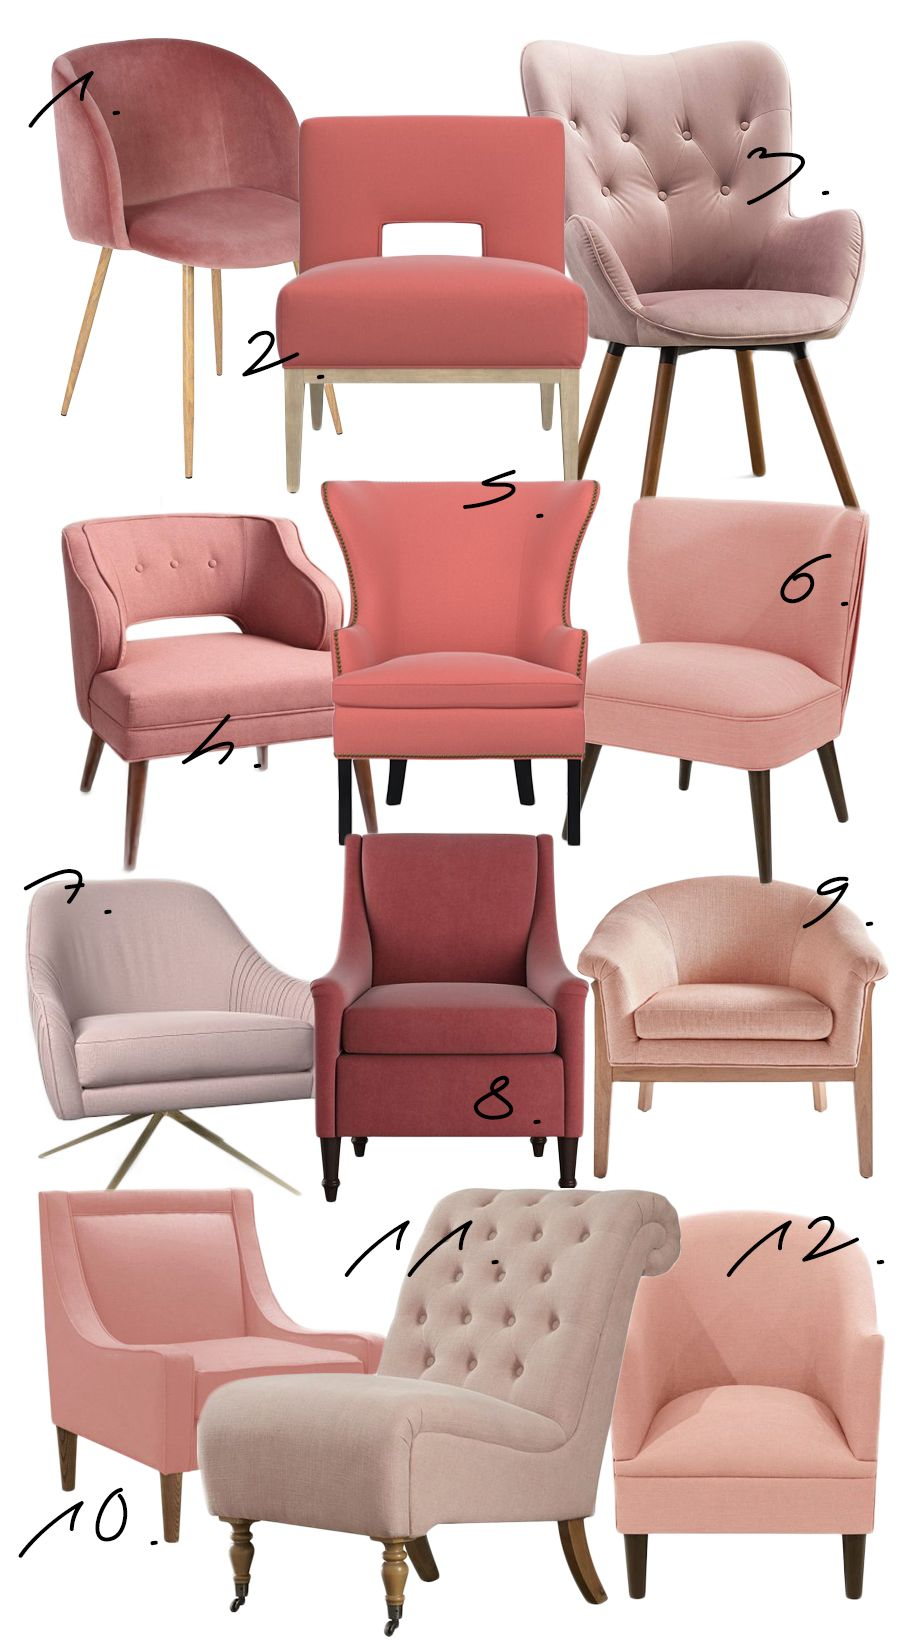 Blush Pink Accent Chairs For Every Budget Pink Furniture Pink